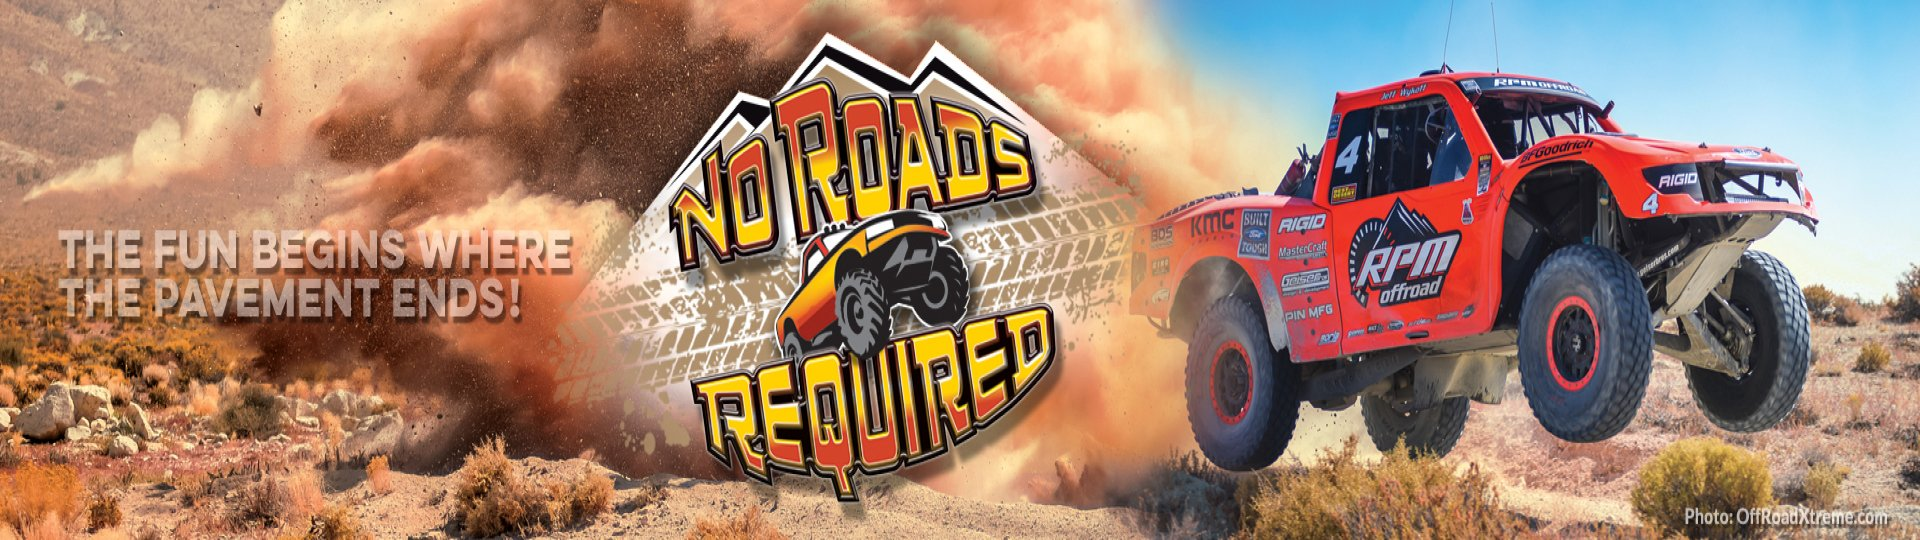 No Roads Required Sept 22, 2017 thru Jan 28, 2018!